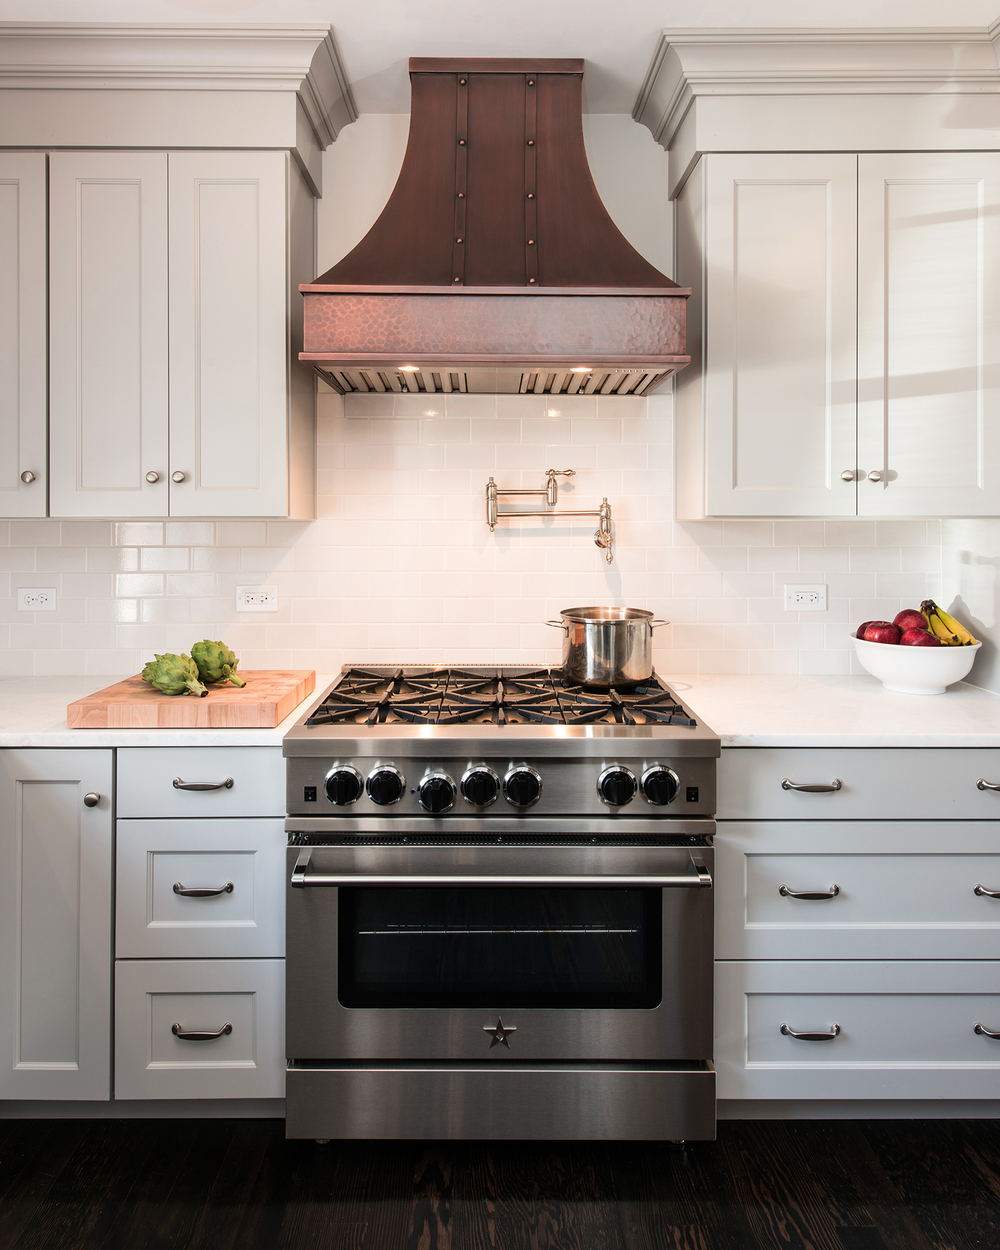 Modern-Country-Inspired-Kitchen-Stove-View-CloseUp.jpg